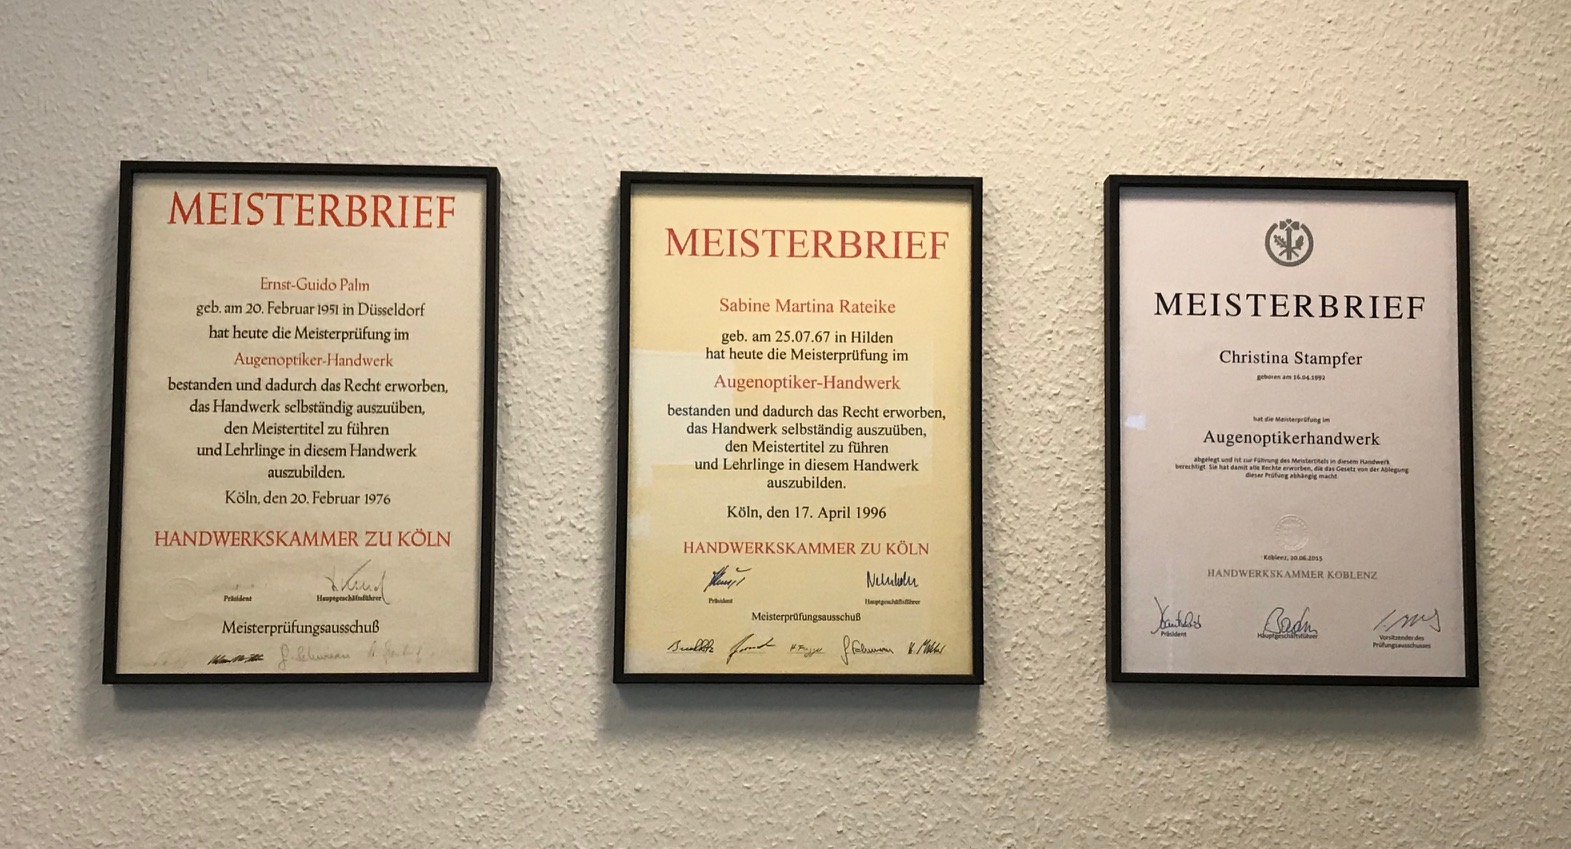 Meisterbriefe